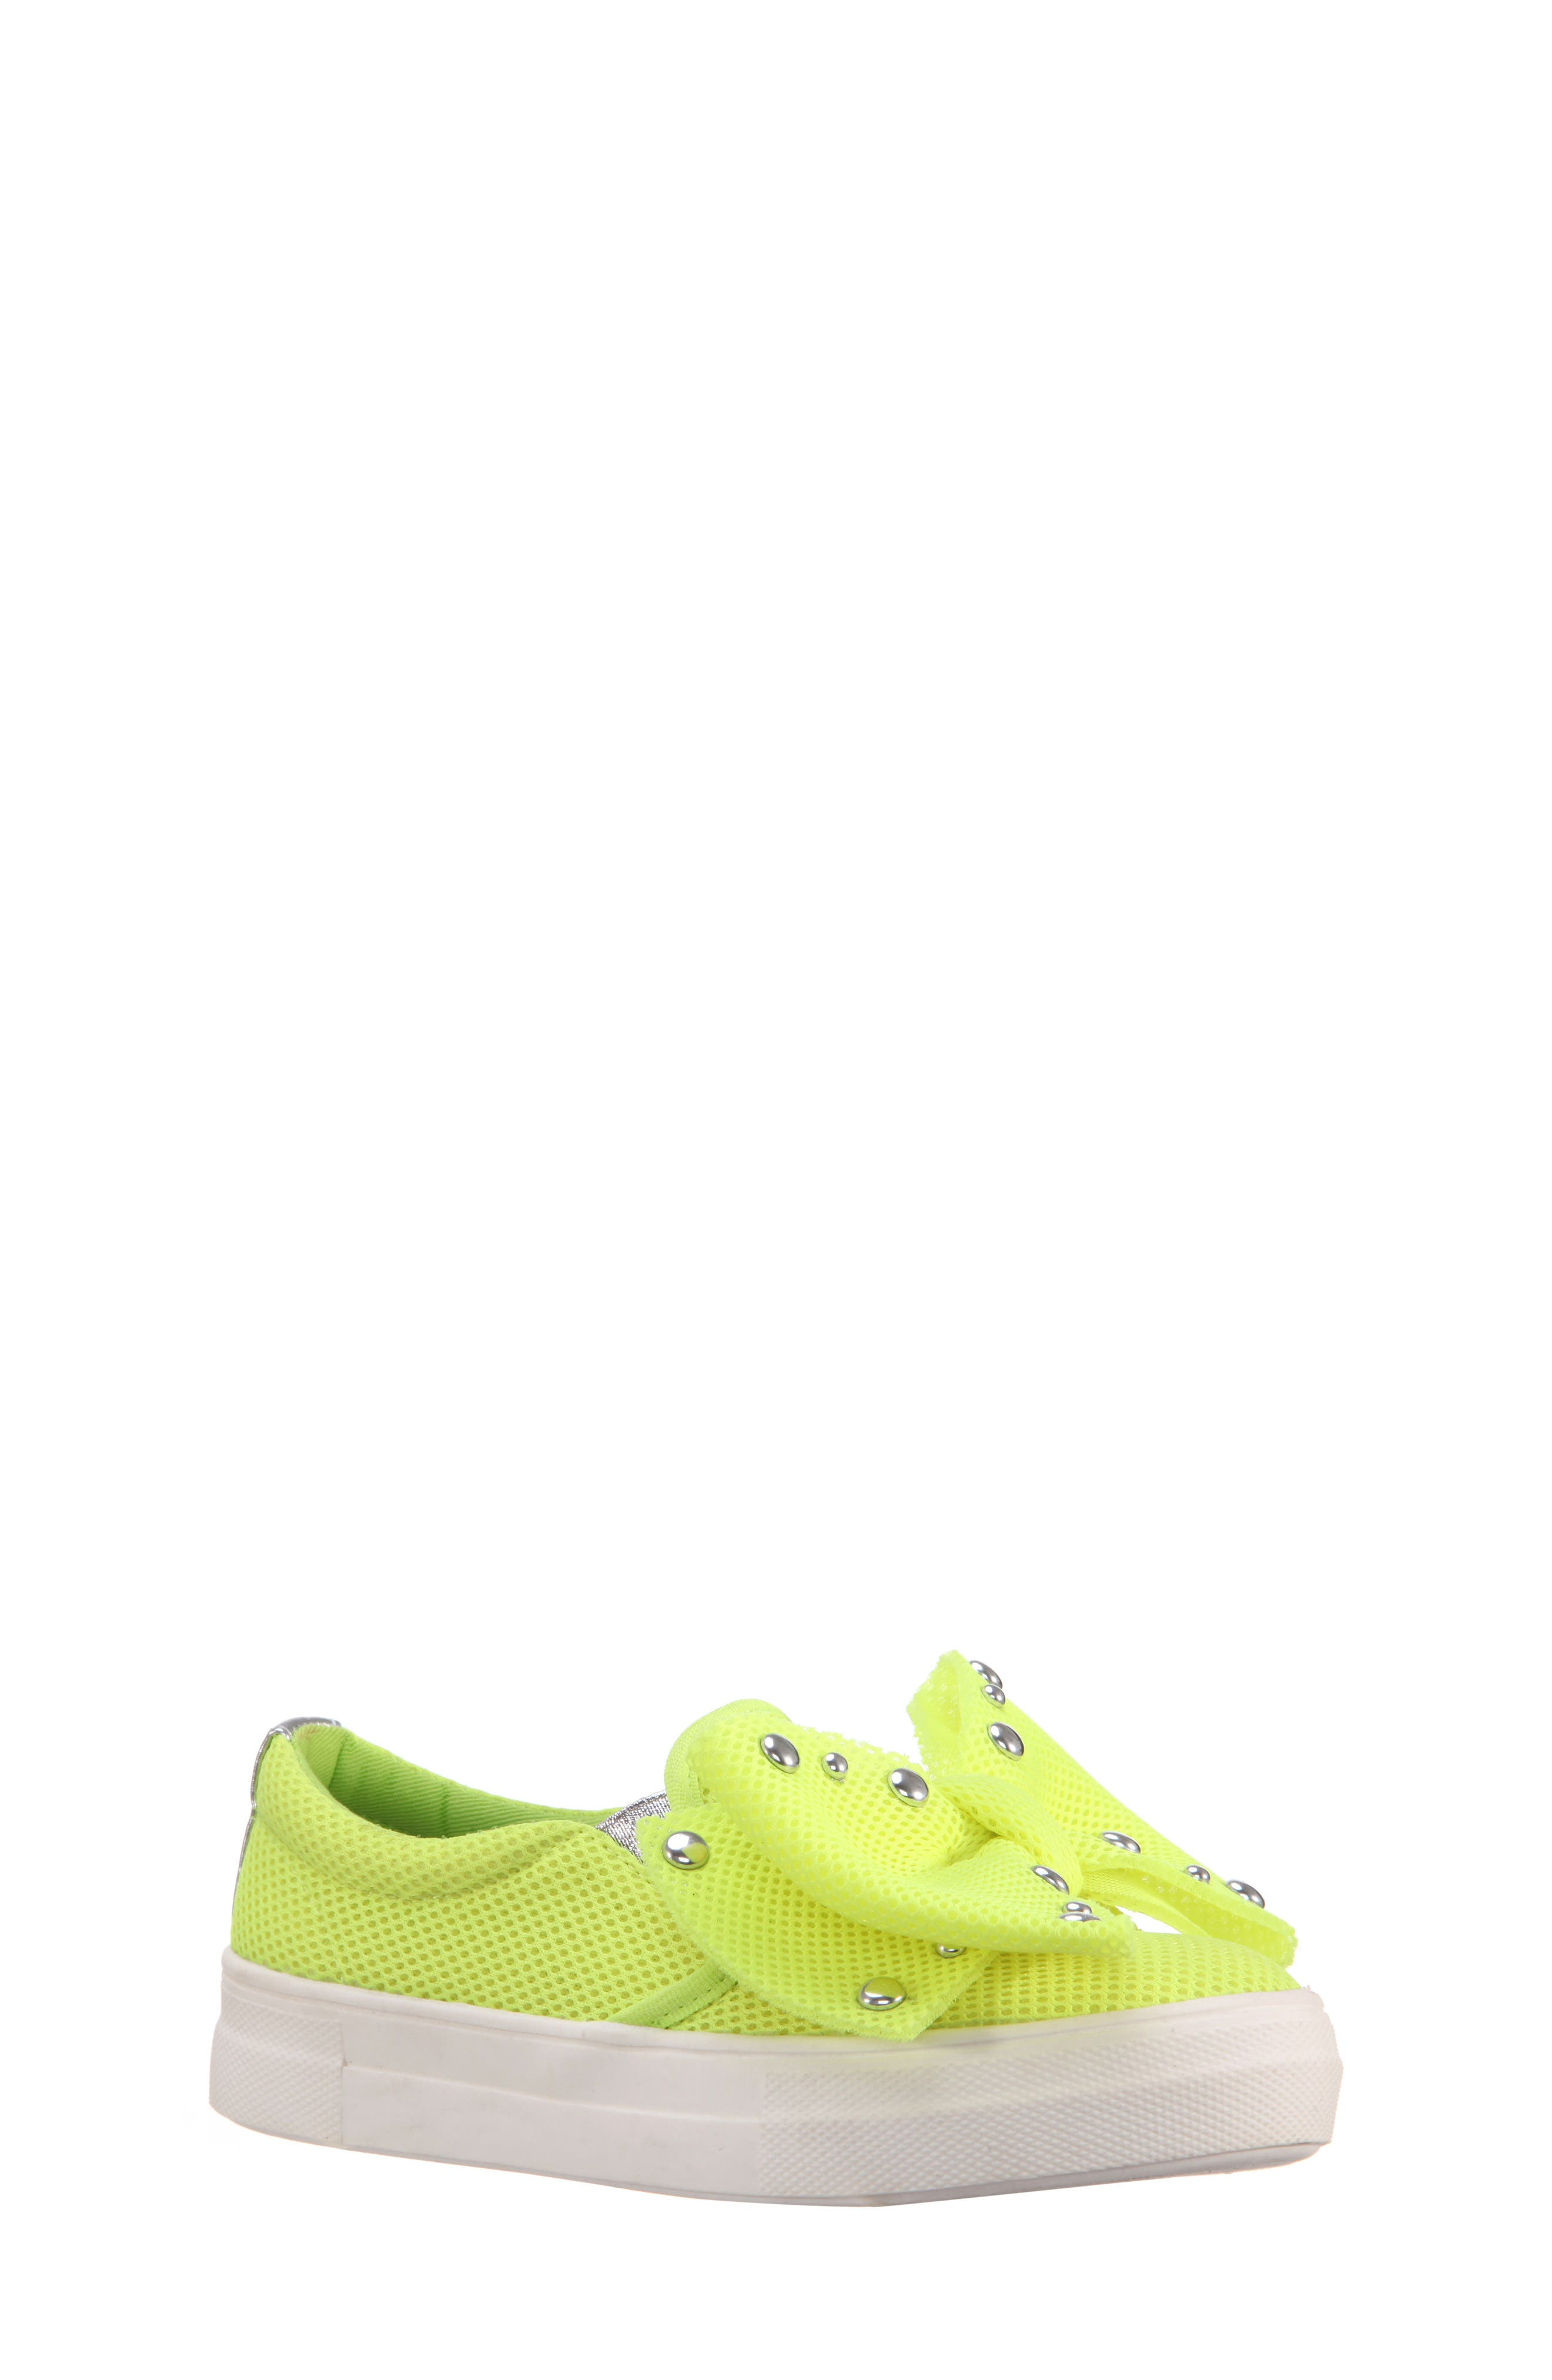 Mary Bow Slip-On Sneaker,                             Main thumbnail 1, color,                             Neon Yellow Mesh